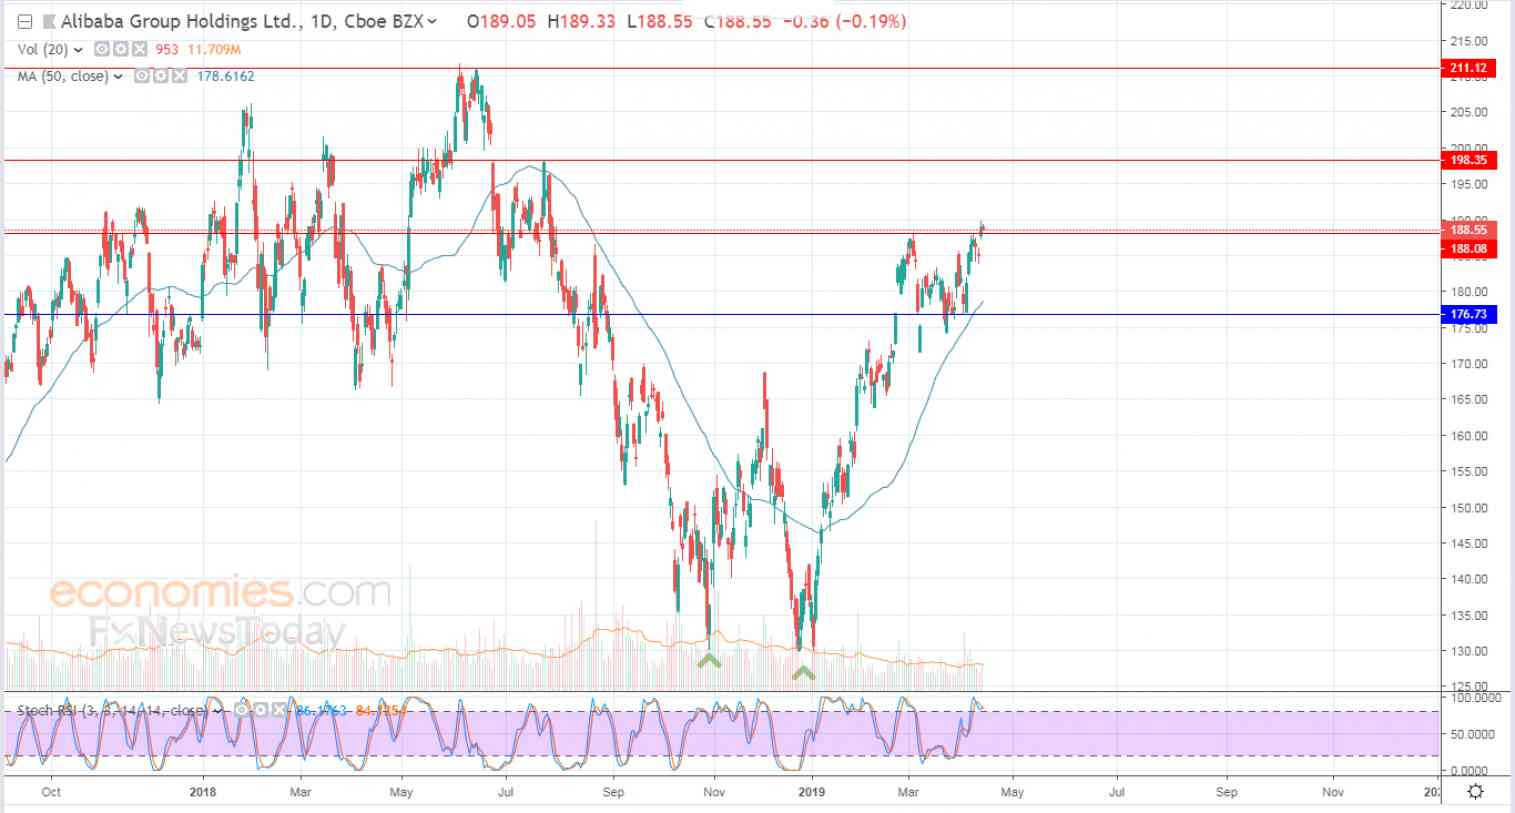 Alibaba tries to vent off overbought saturation - Analysis - 15-04-2019